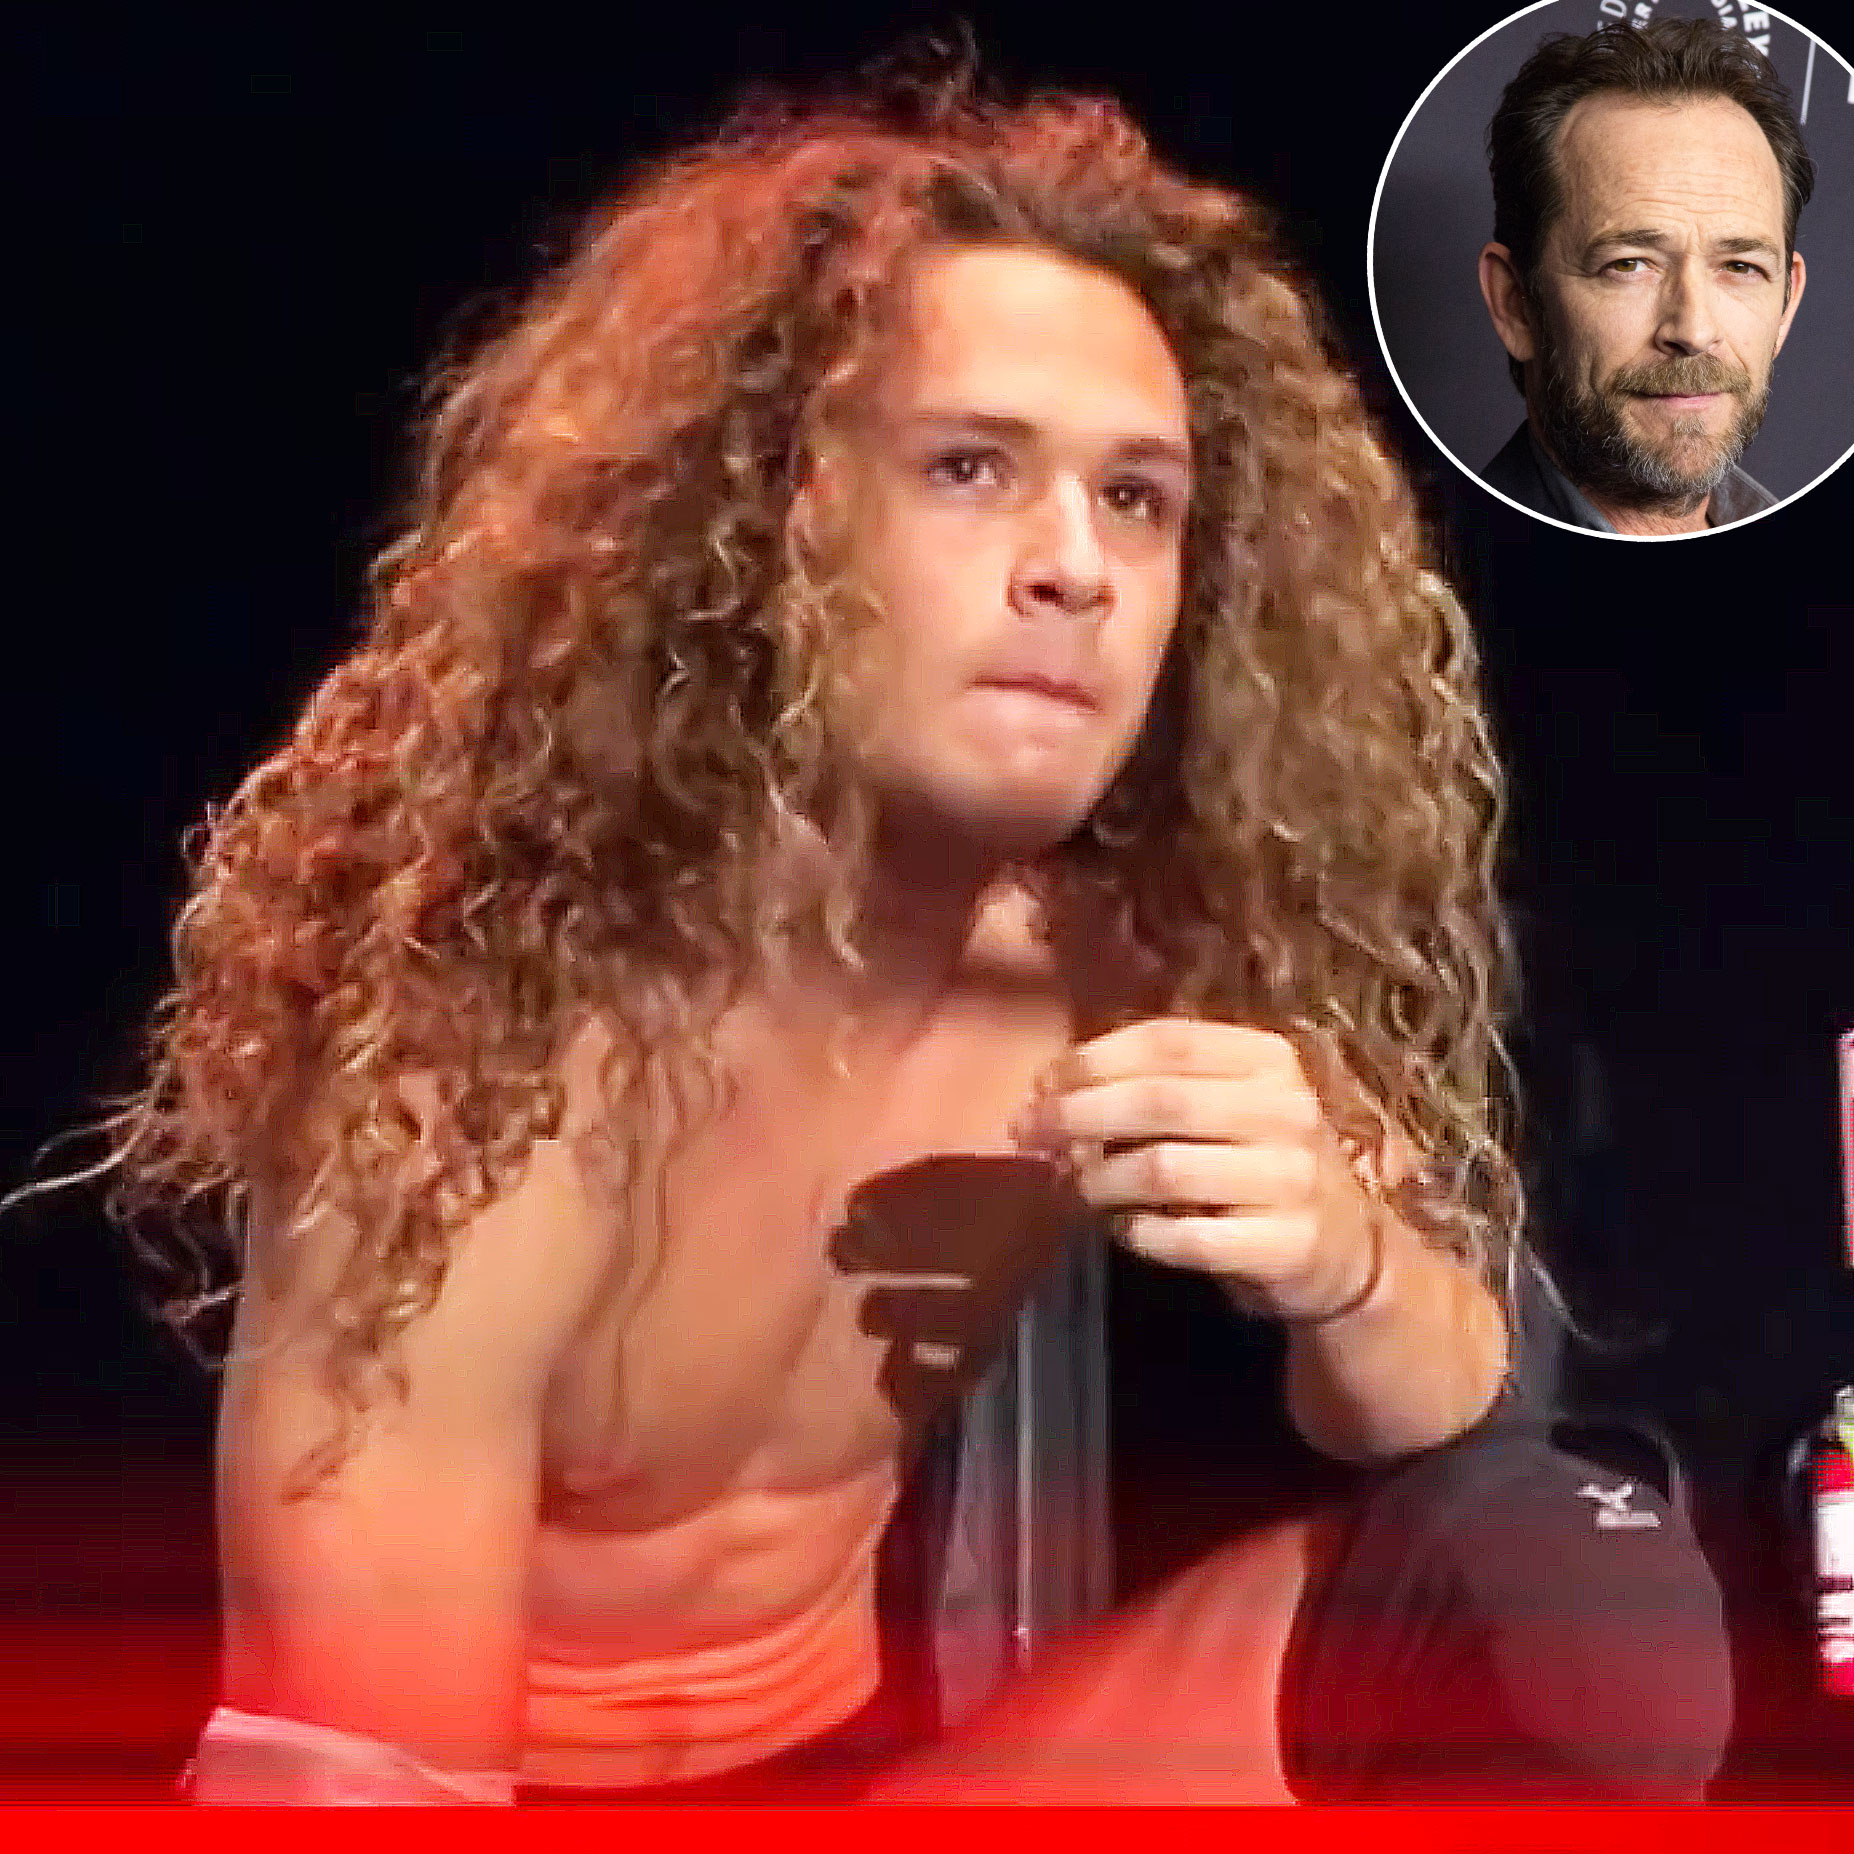 Luke Perry Dead Wrestler Son Jack Drops Out Of Show